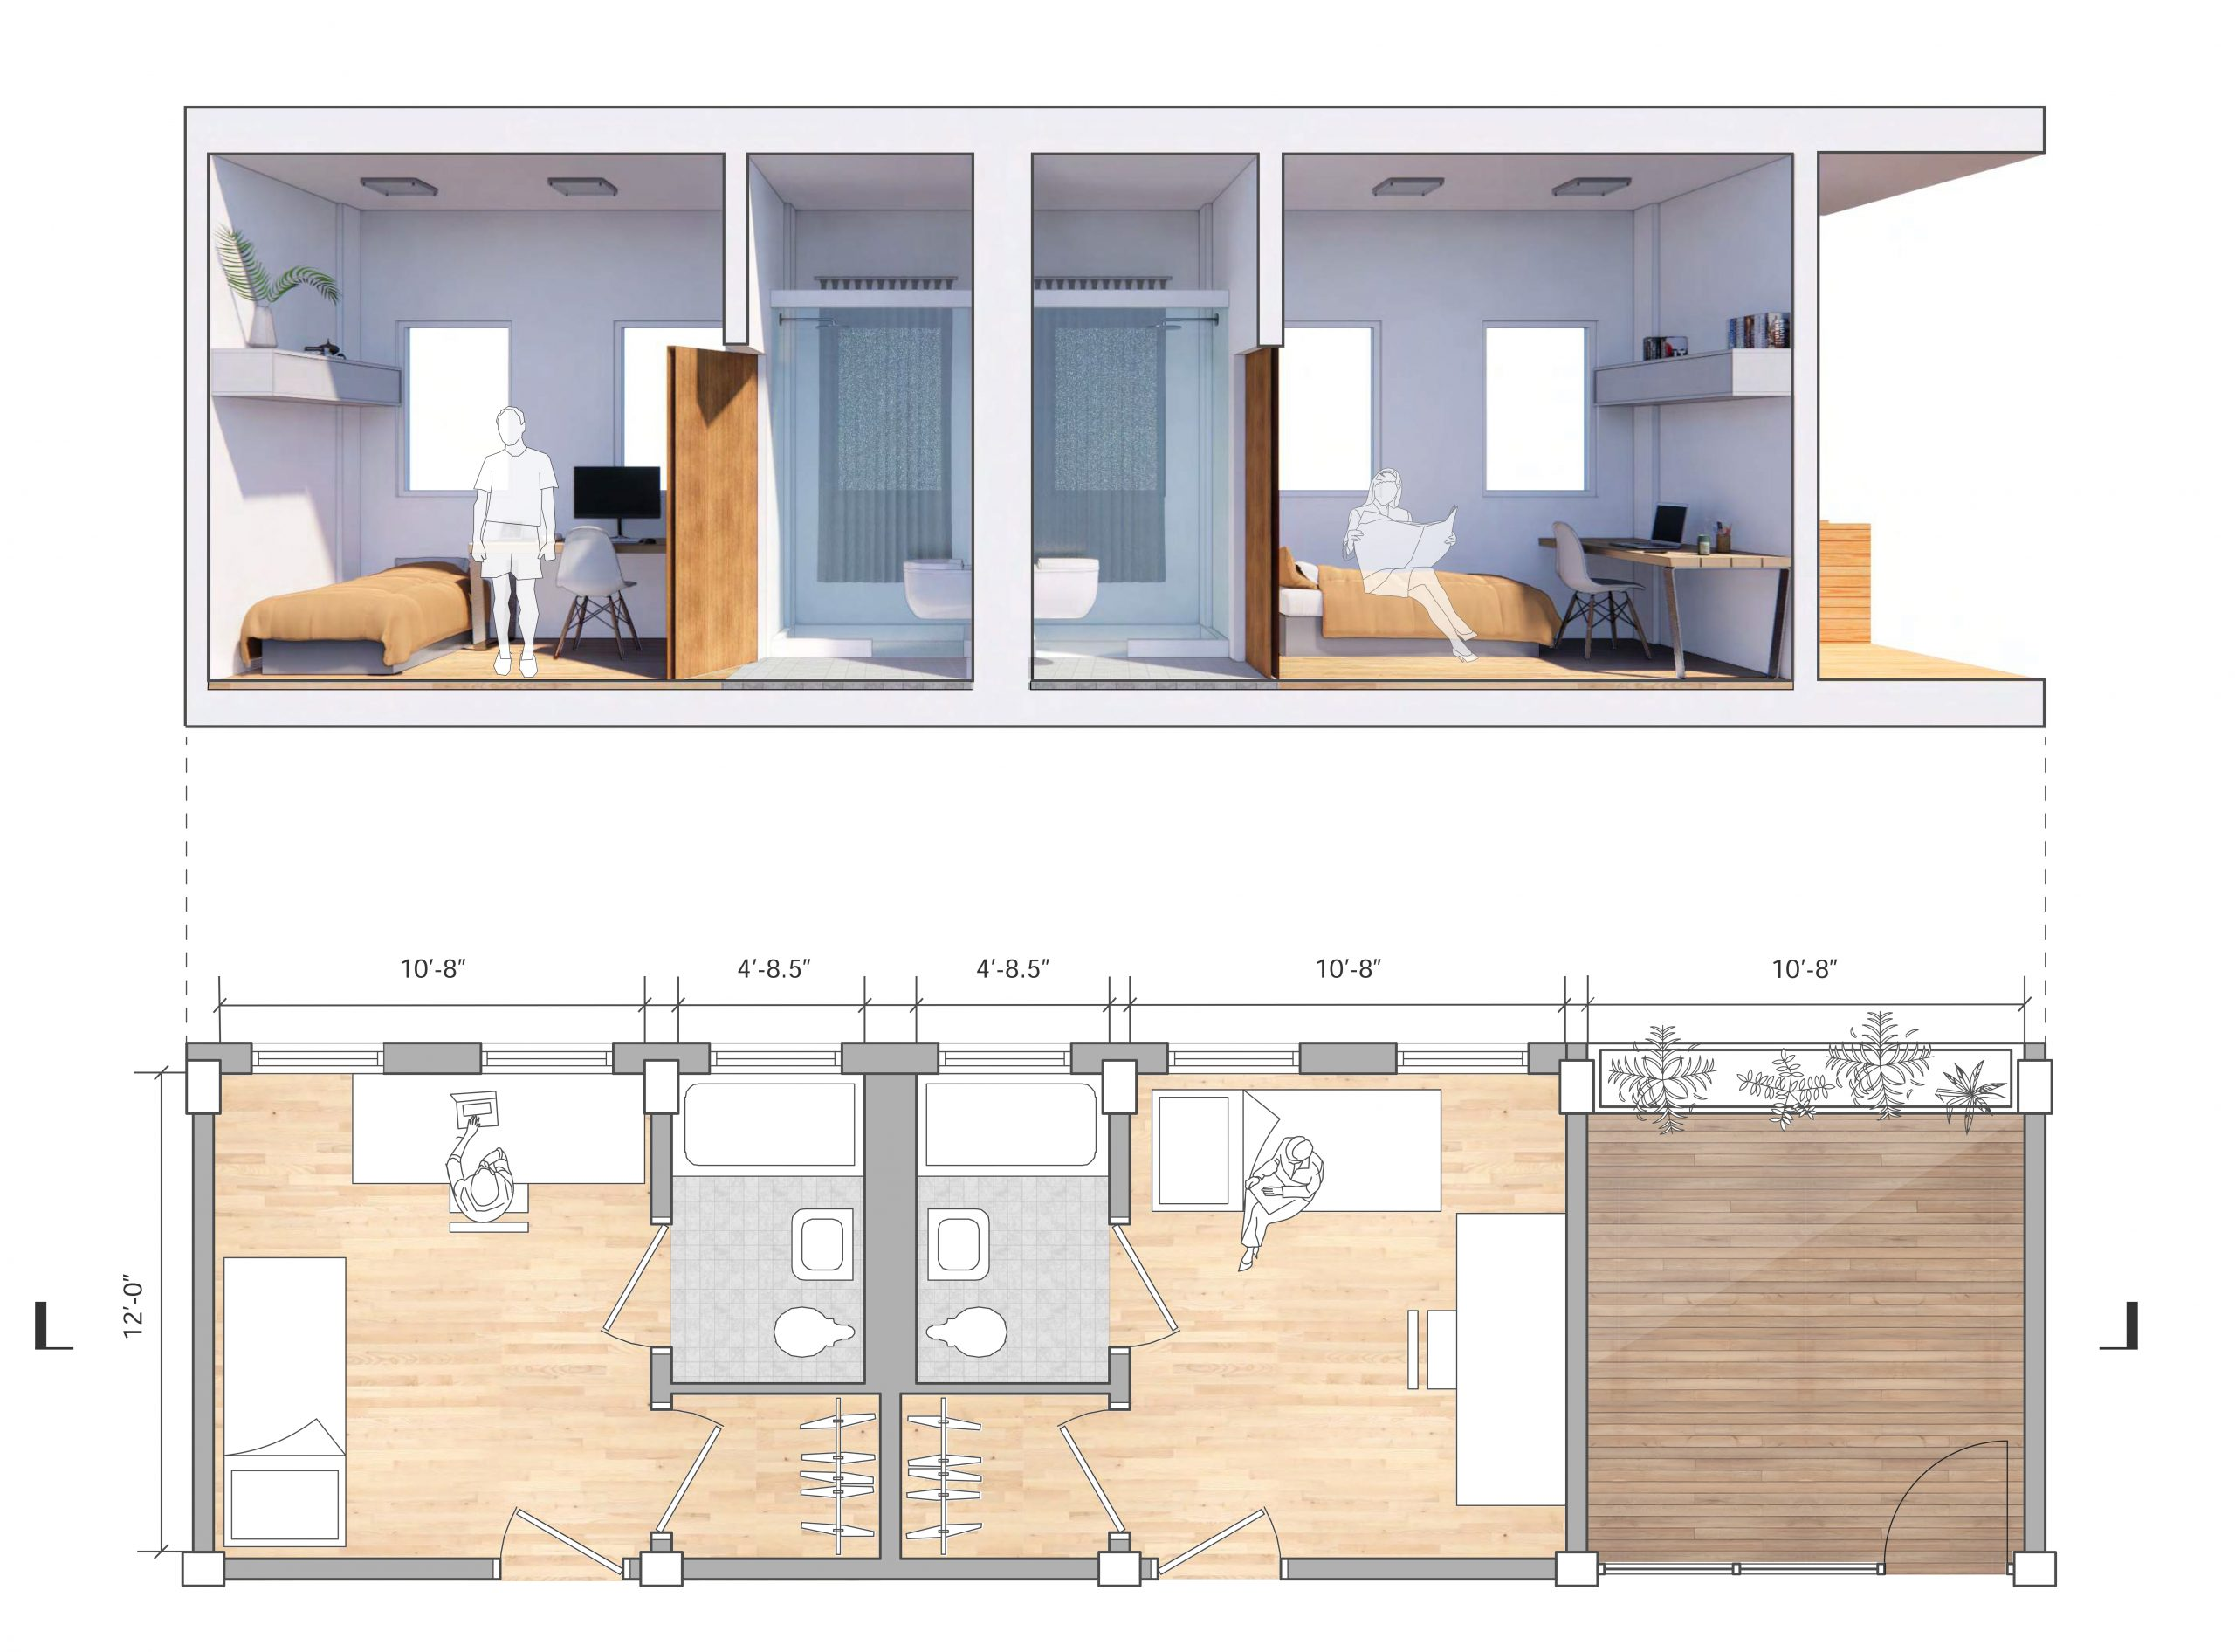 rendered section and plan of new dorm room designs